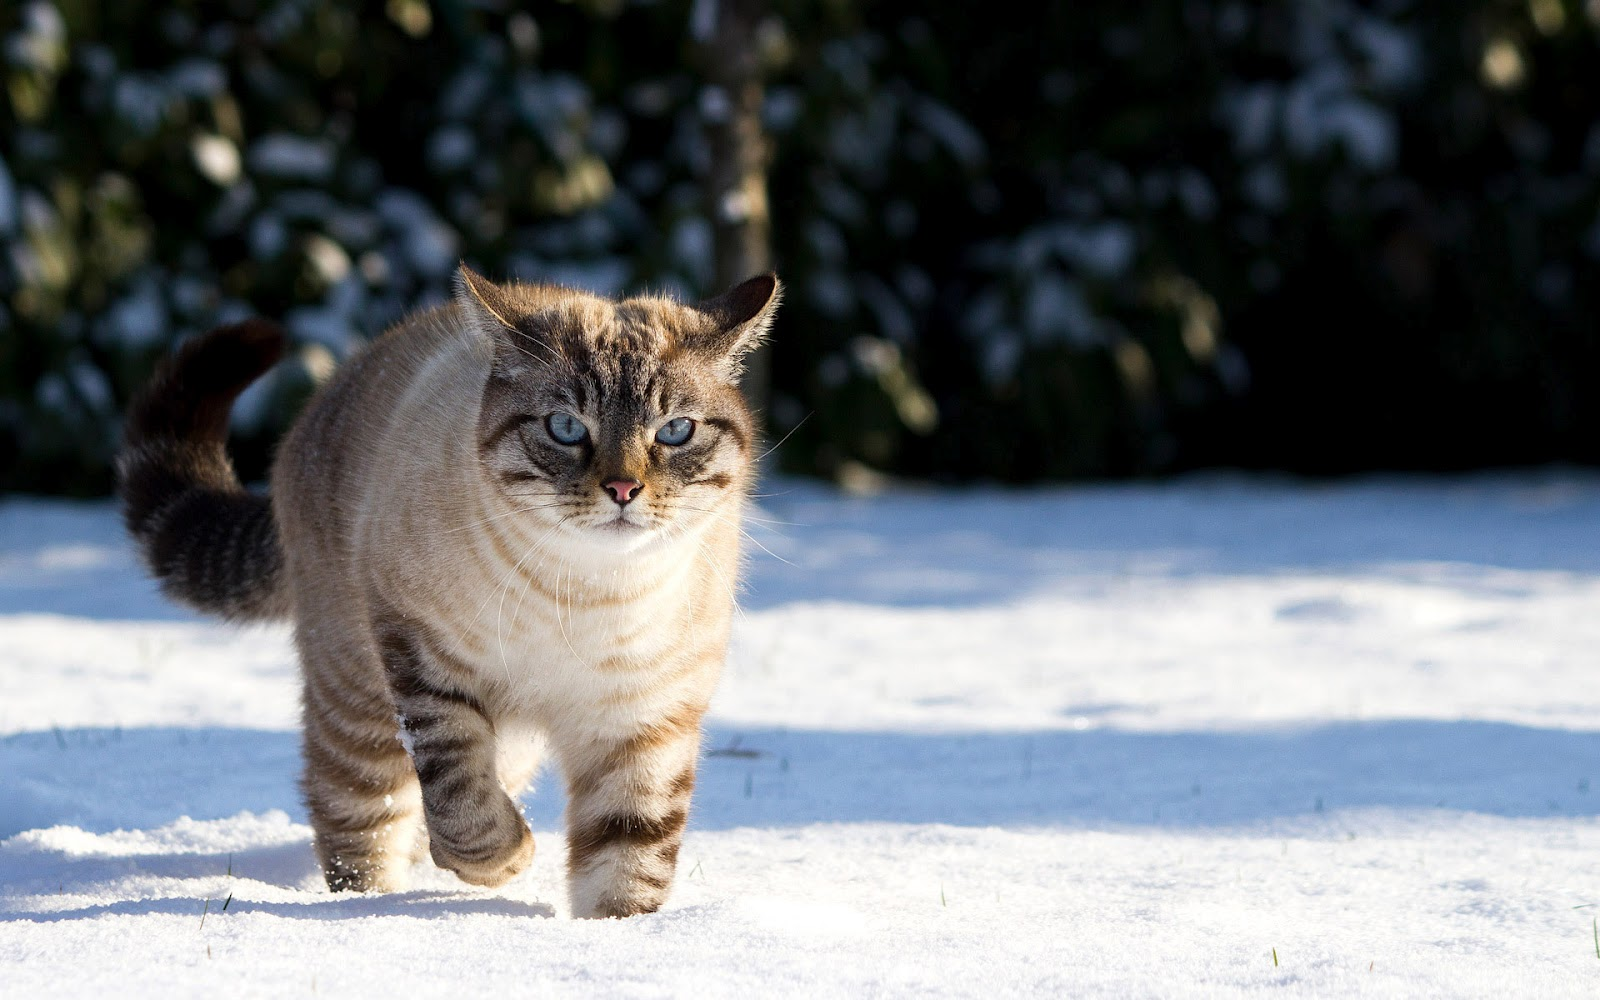 Cool   Wallpaper Horse Snow - winter-wallpaper-with-a-cute-cat-walking-in-the-snow-hd-cat-wallpaper  Trends_100117.jpg